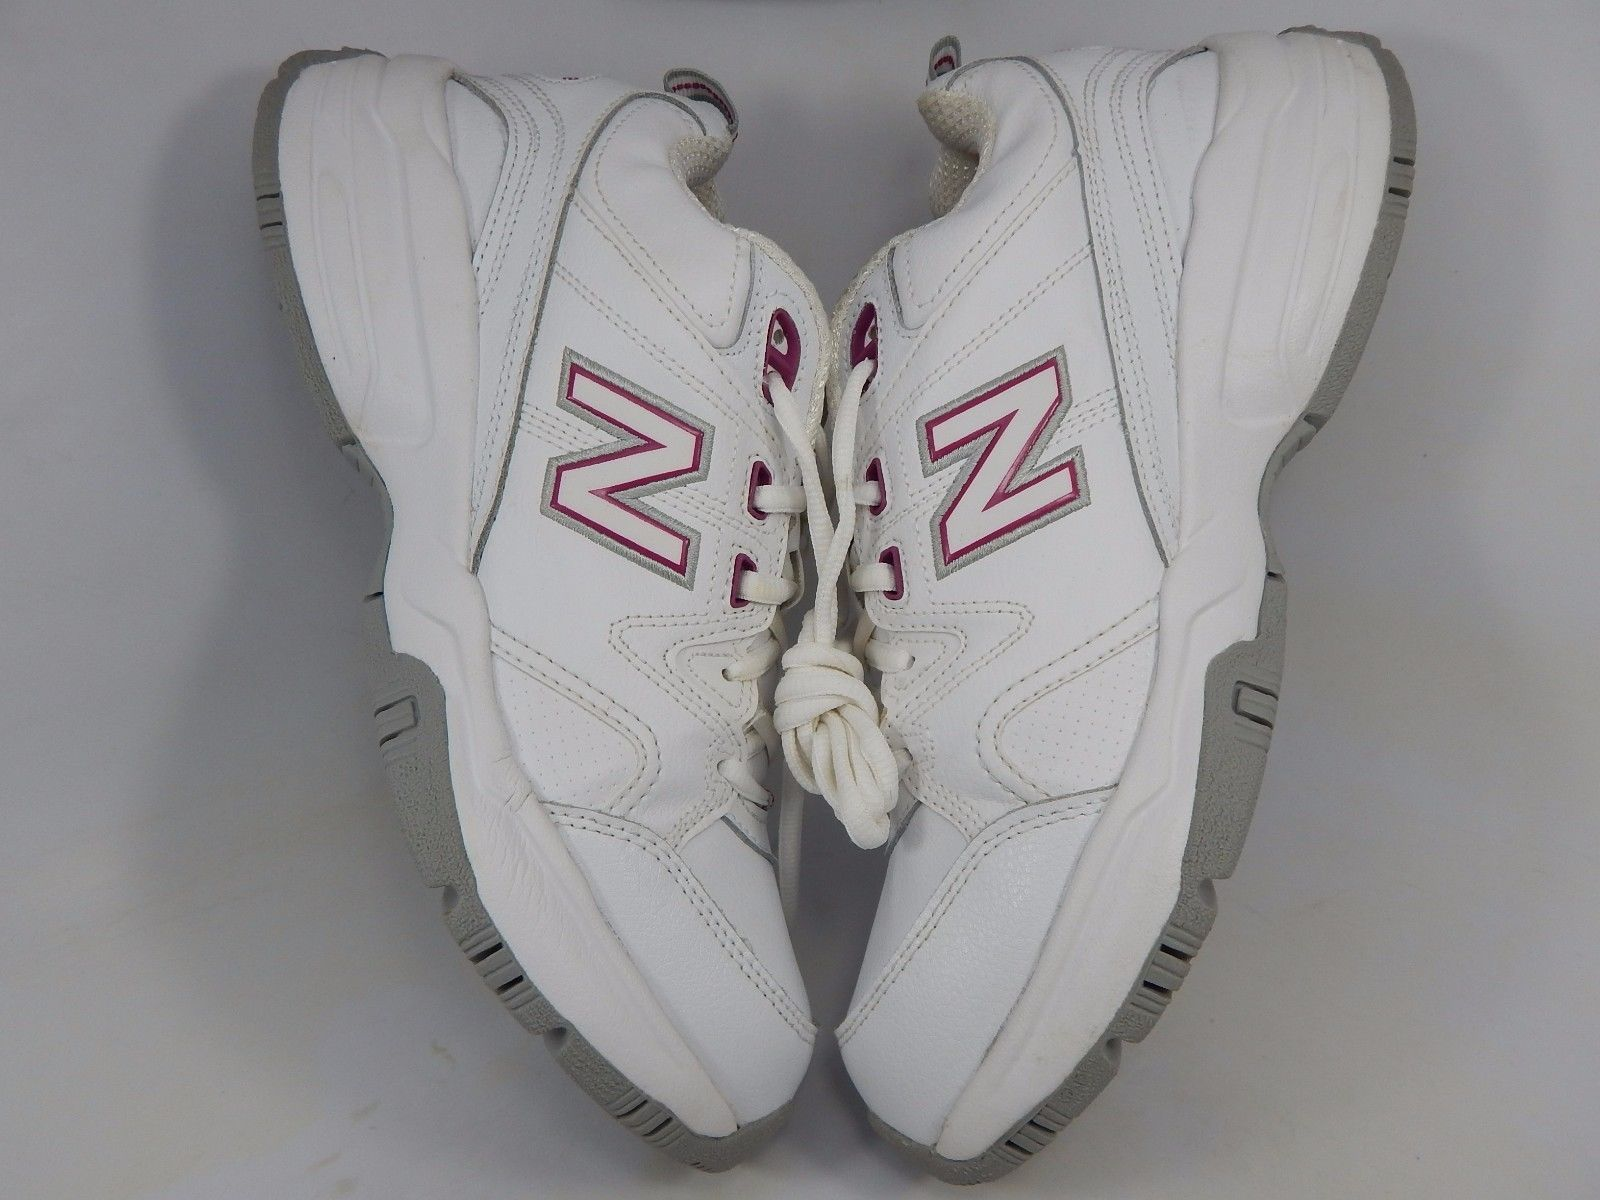 New Balance 609 v2 Women's Training Shoes Sz US 10 M (B) EU 41.5 White WX609CS2